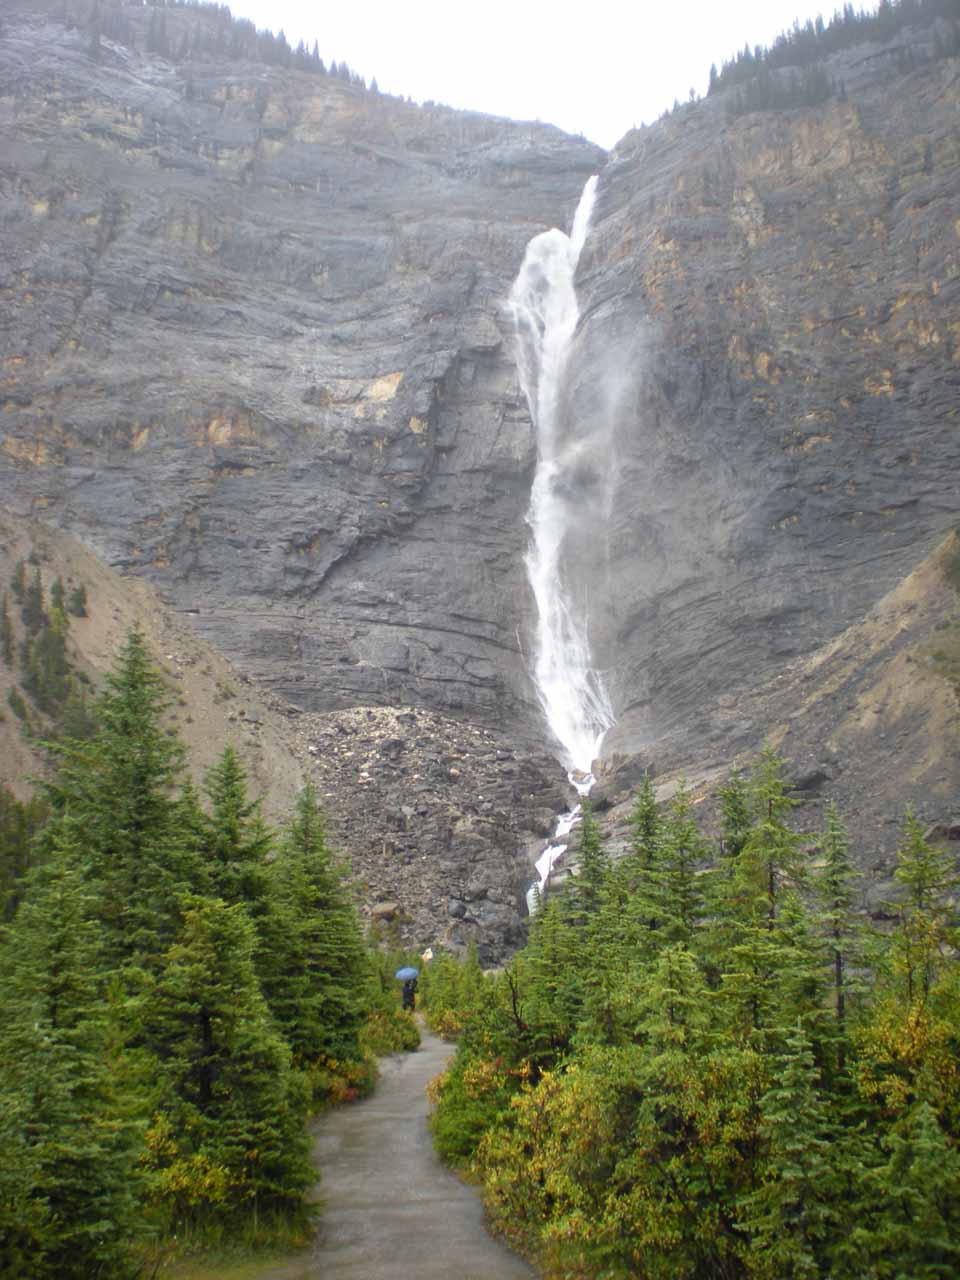 Approaching Takakkaw Falls in the downpour